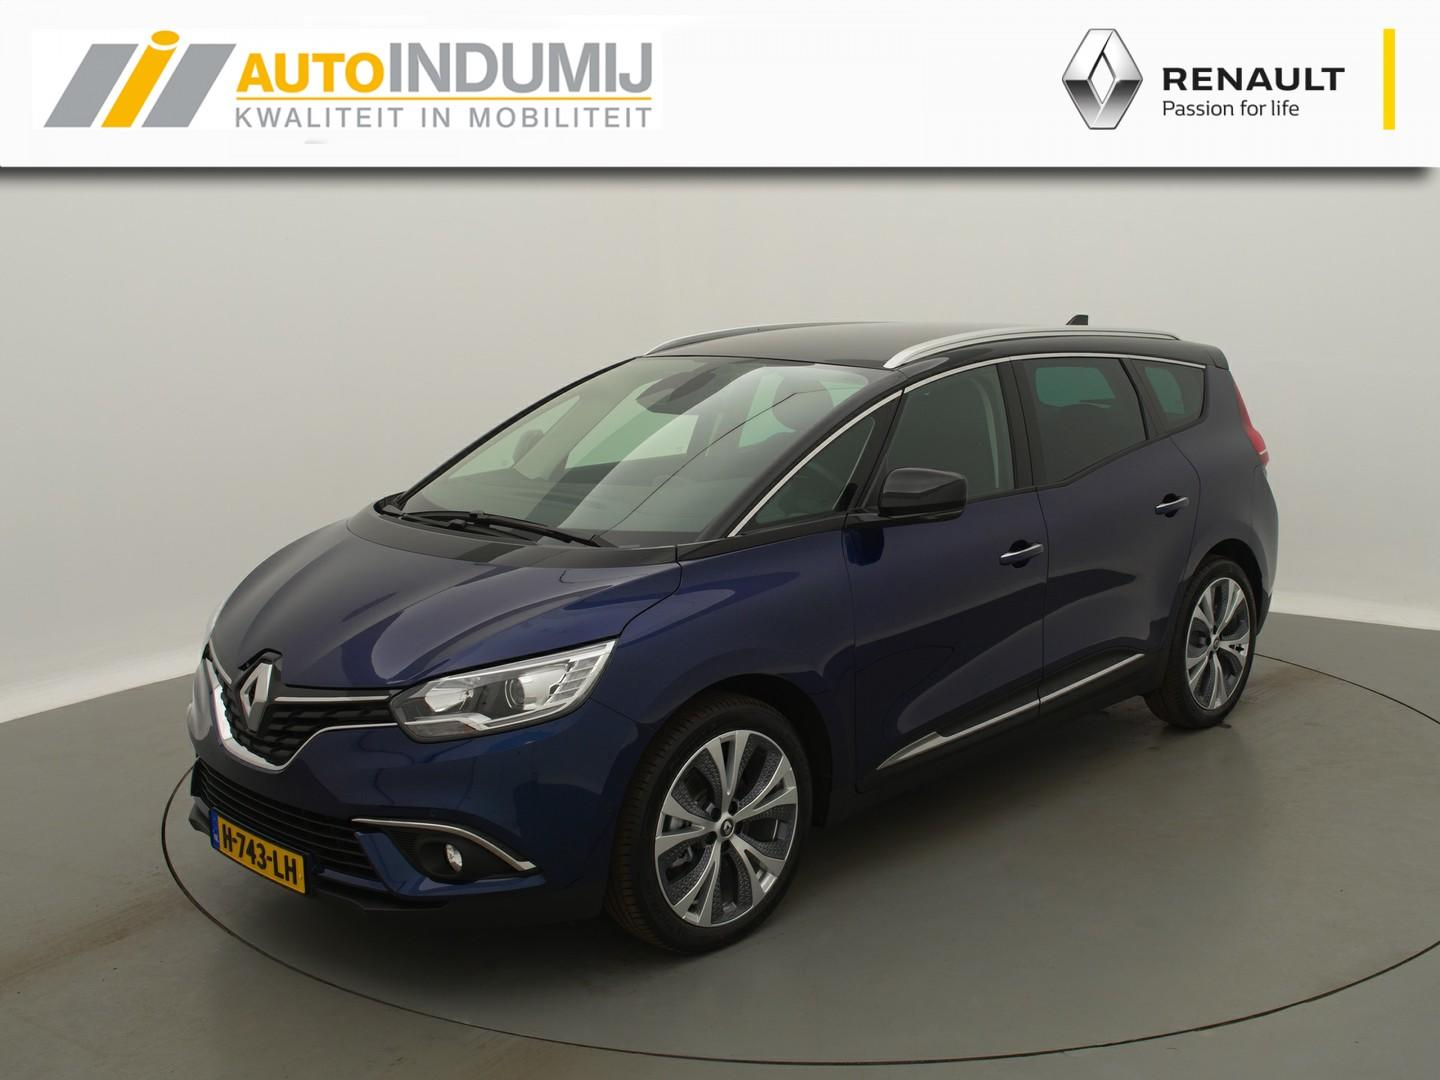 Renault Grand scénic Tce 140 intens 7p. / demonstratieauto